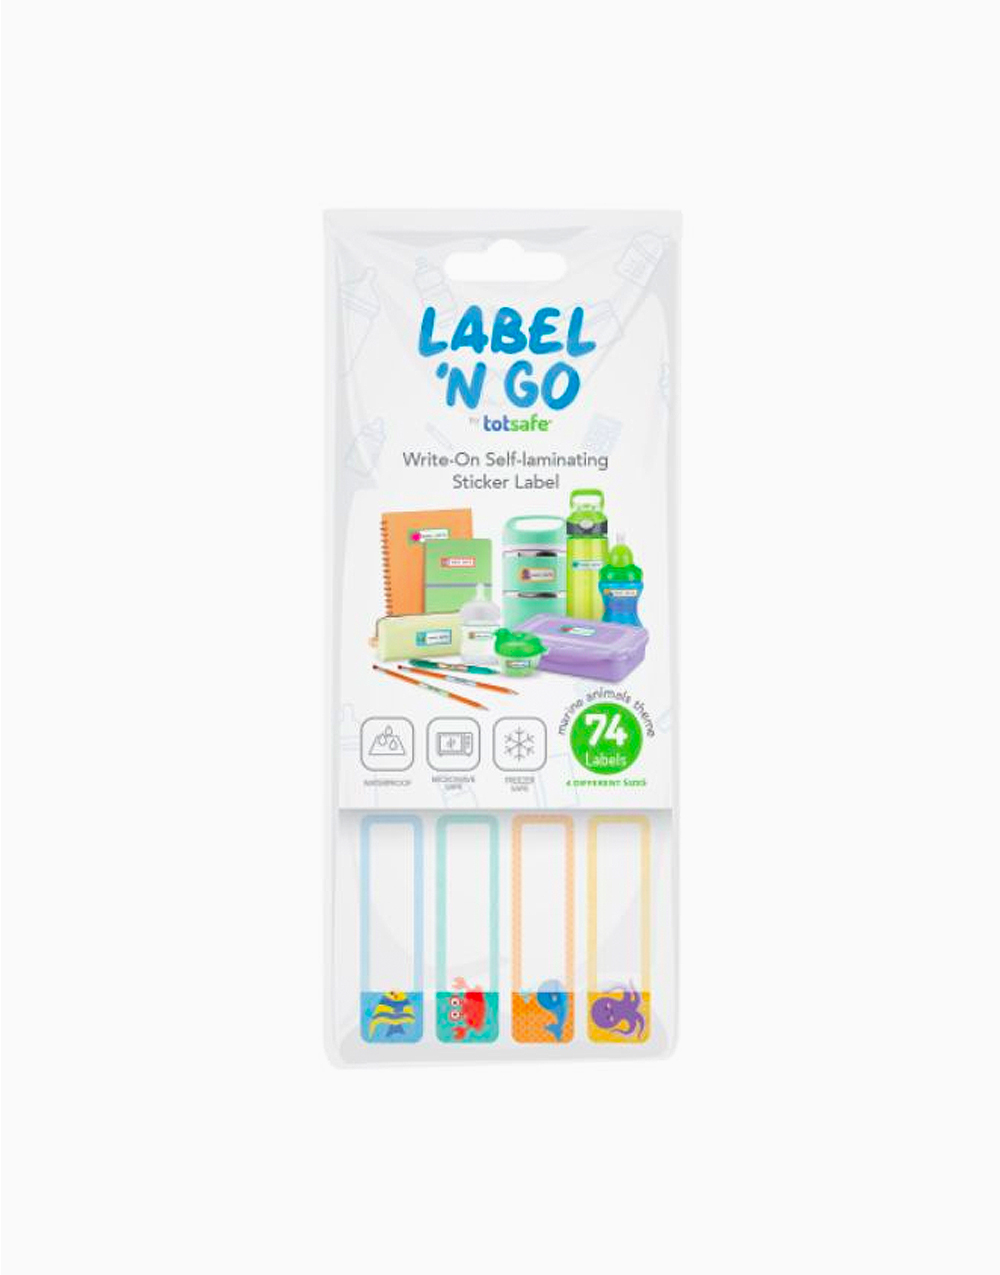 Label 'N Go Self-Laminating Sticker Labels by Totsafe | Marine Theme